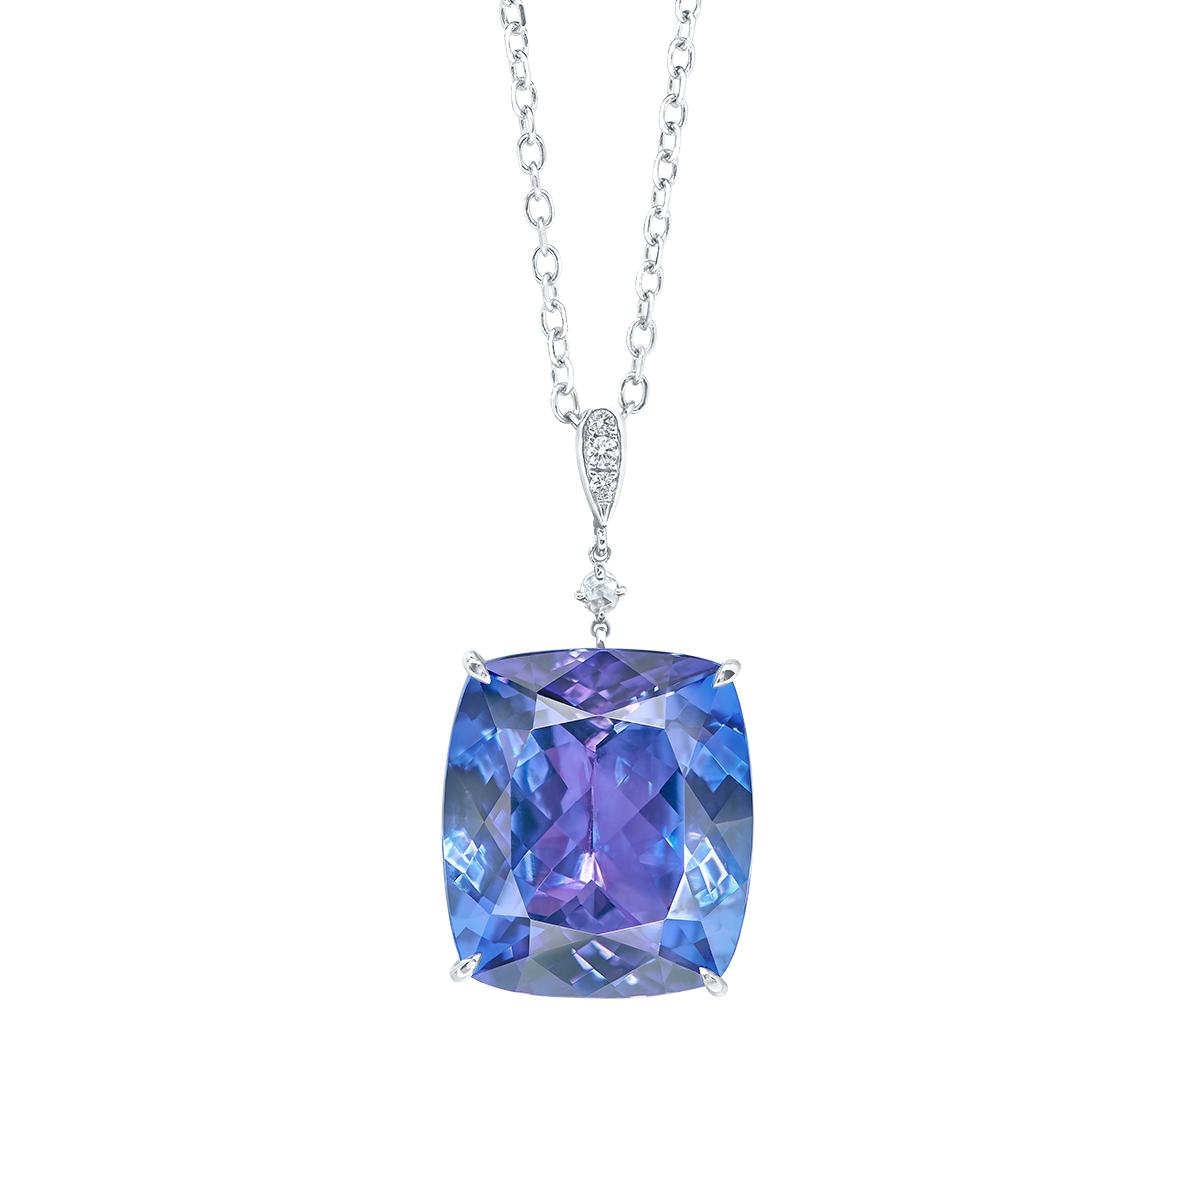 21.52克拉 丹泉石墜鍊